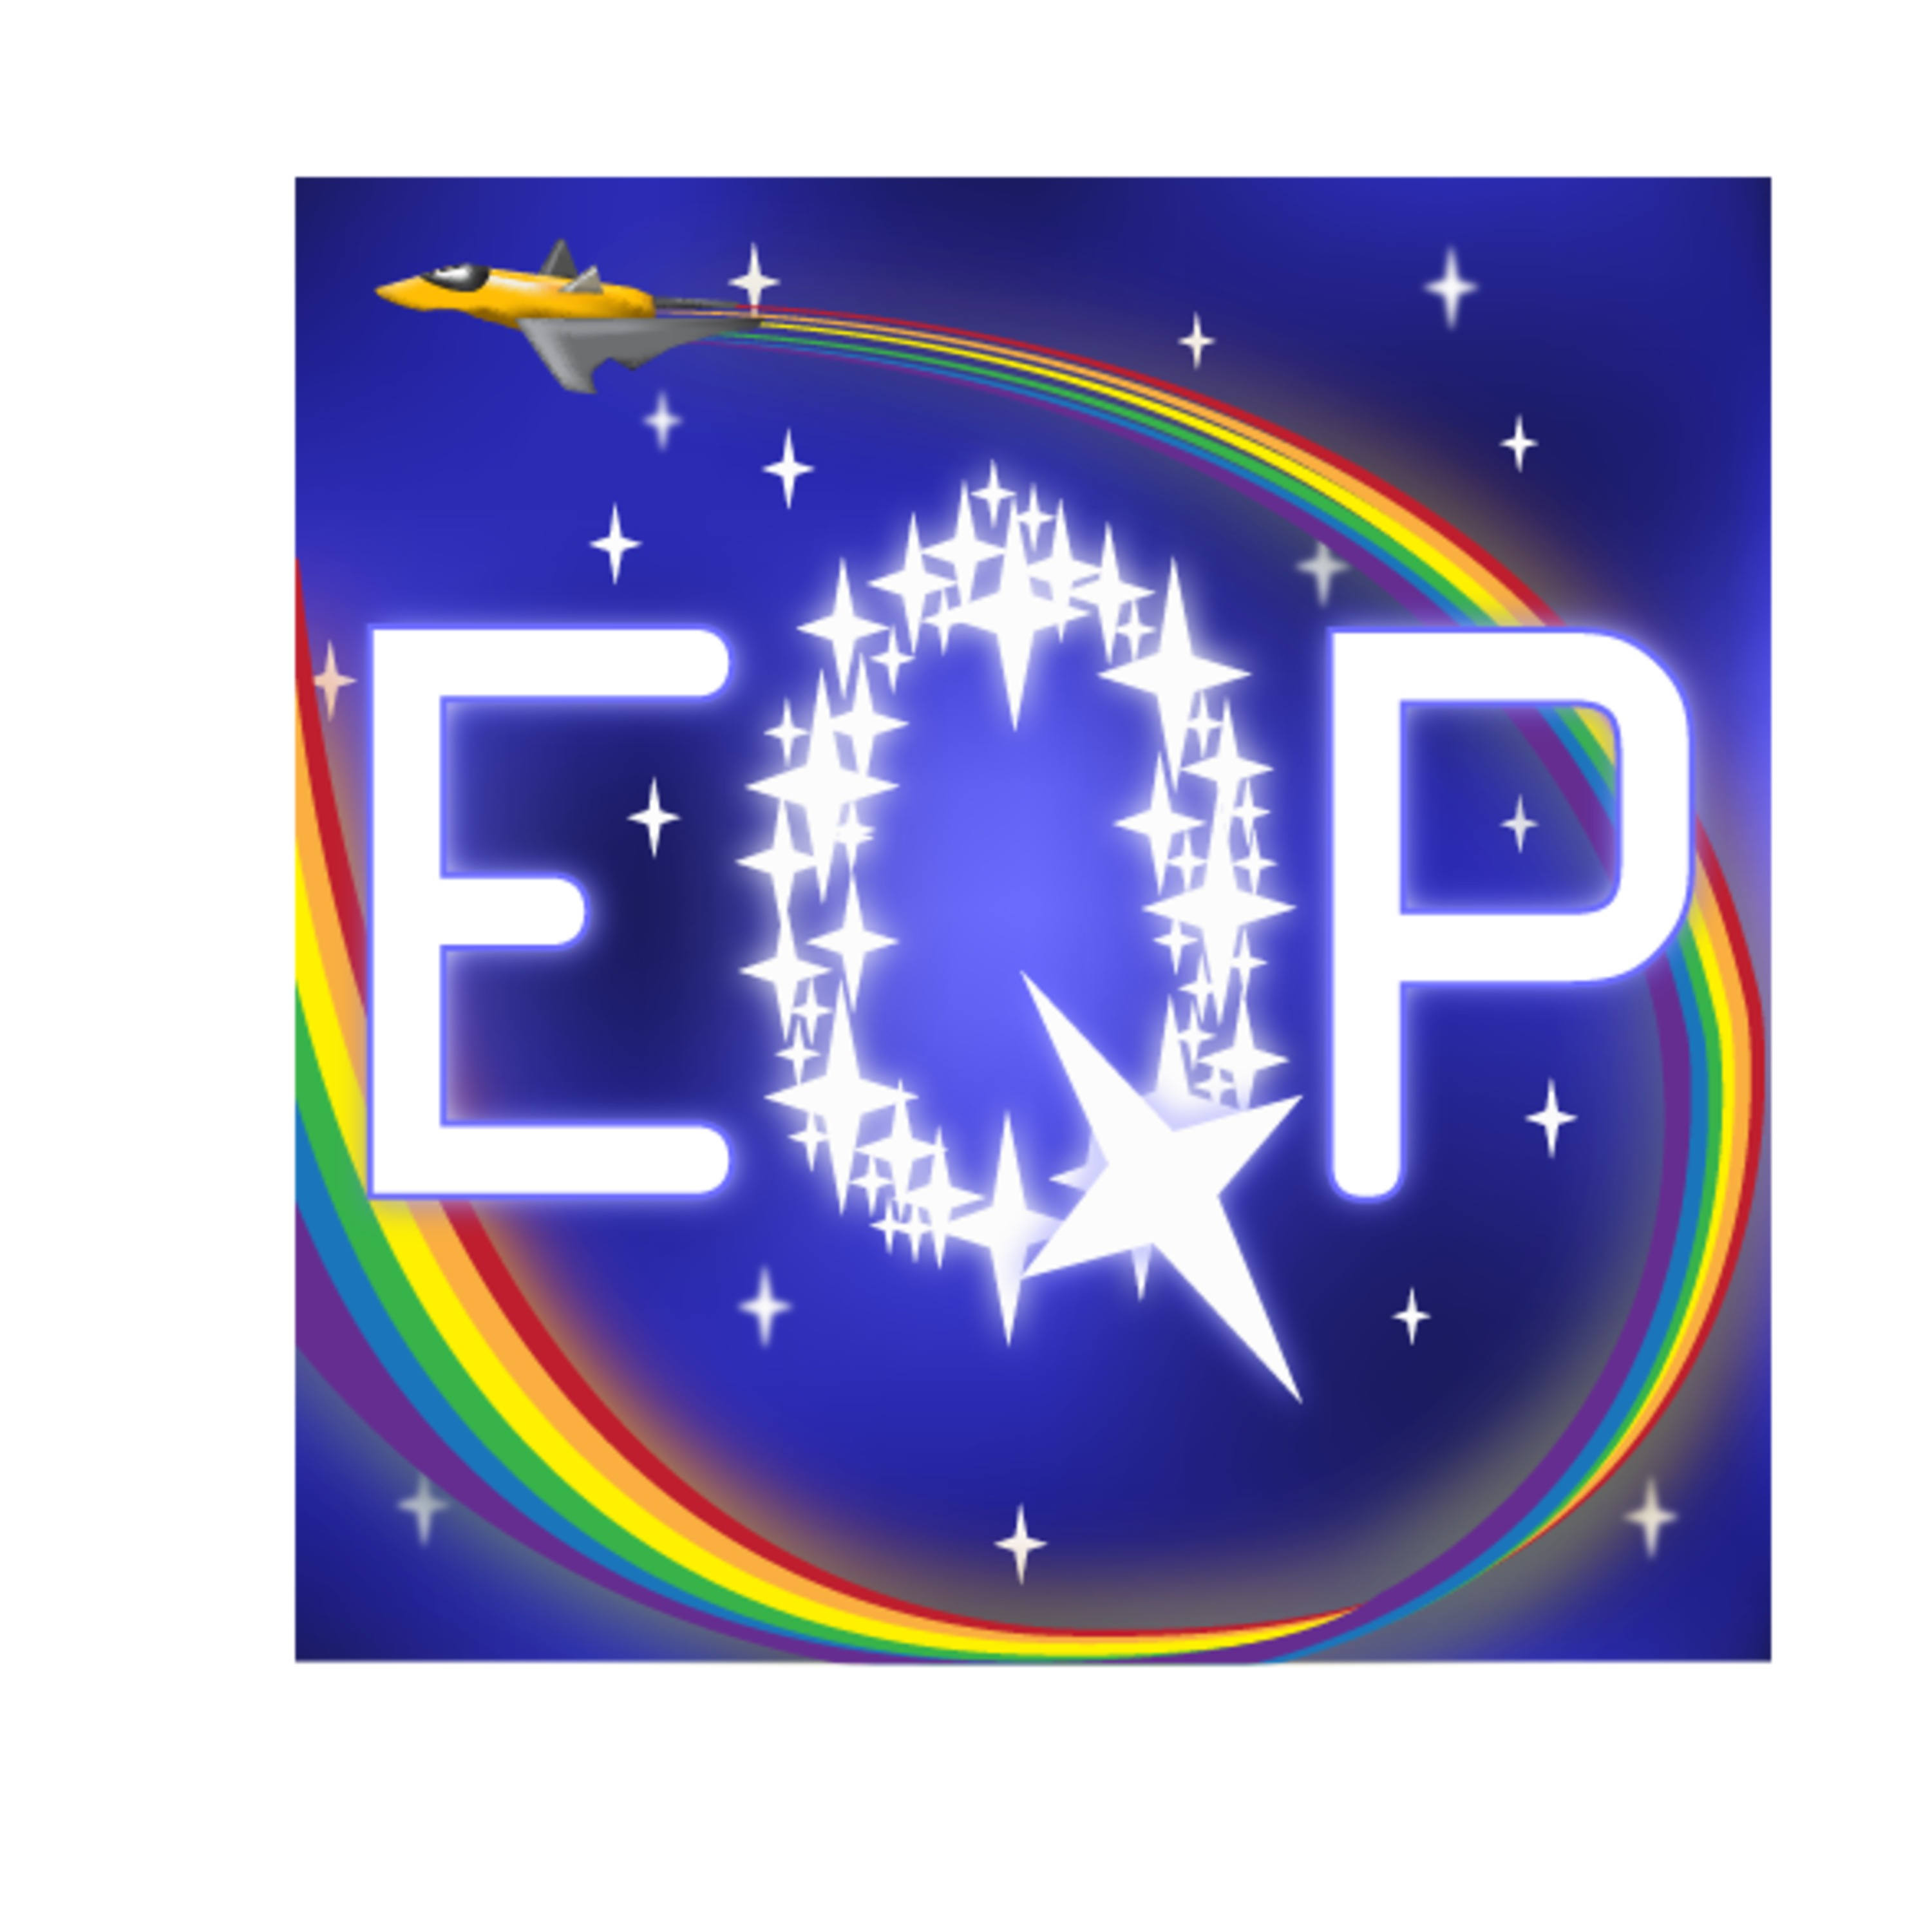 EQP SF S2 EP:0 Part 1 Meet the cast/crew!